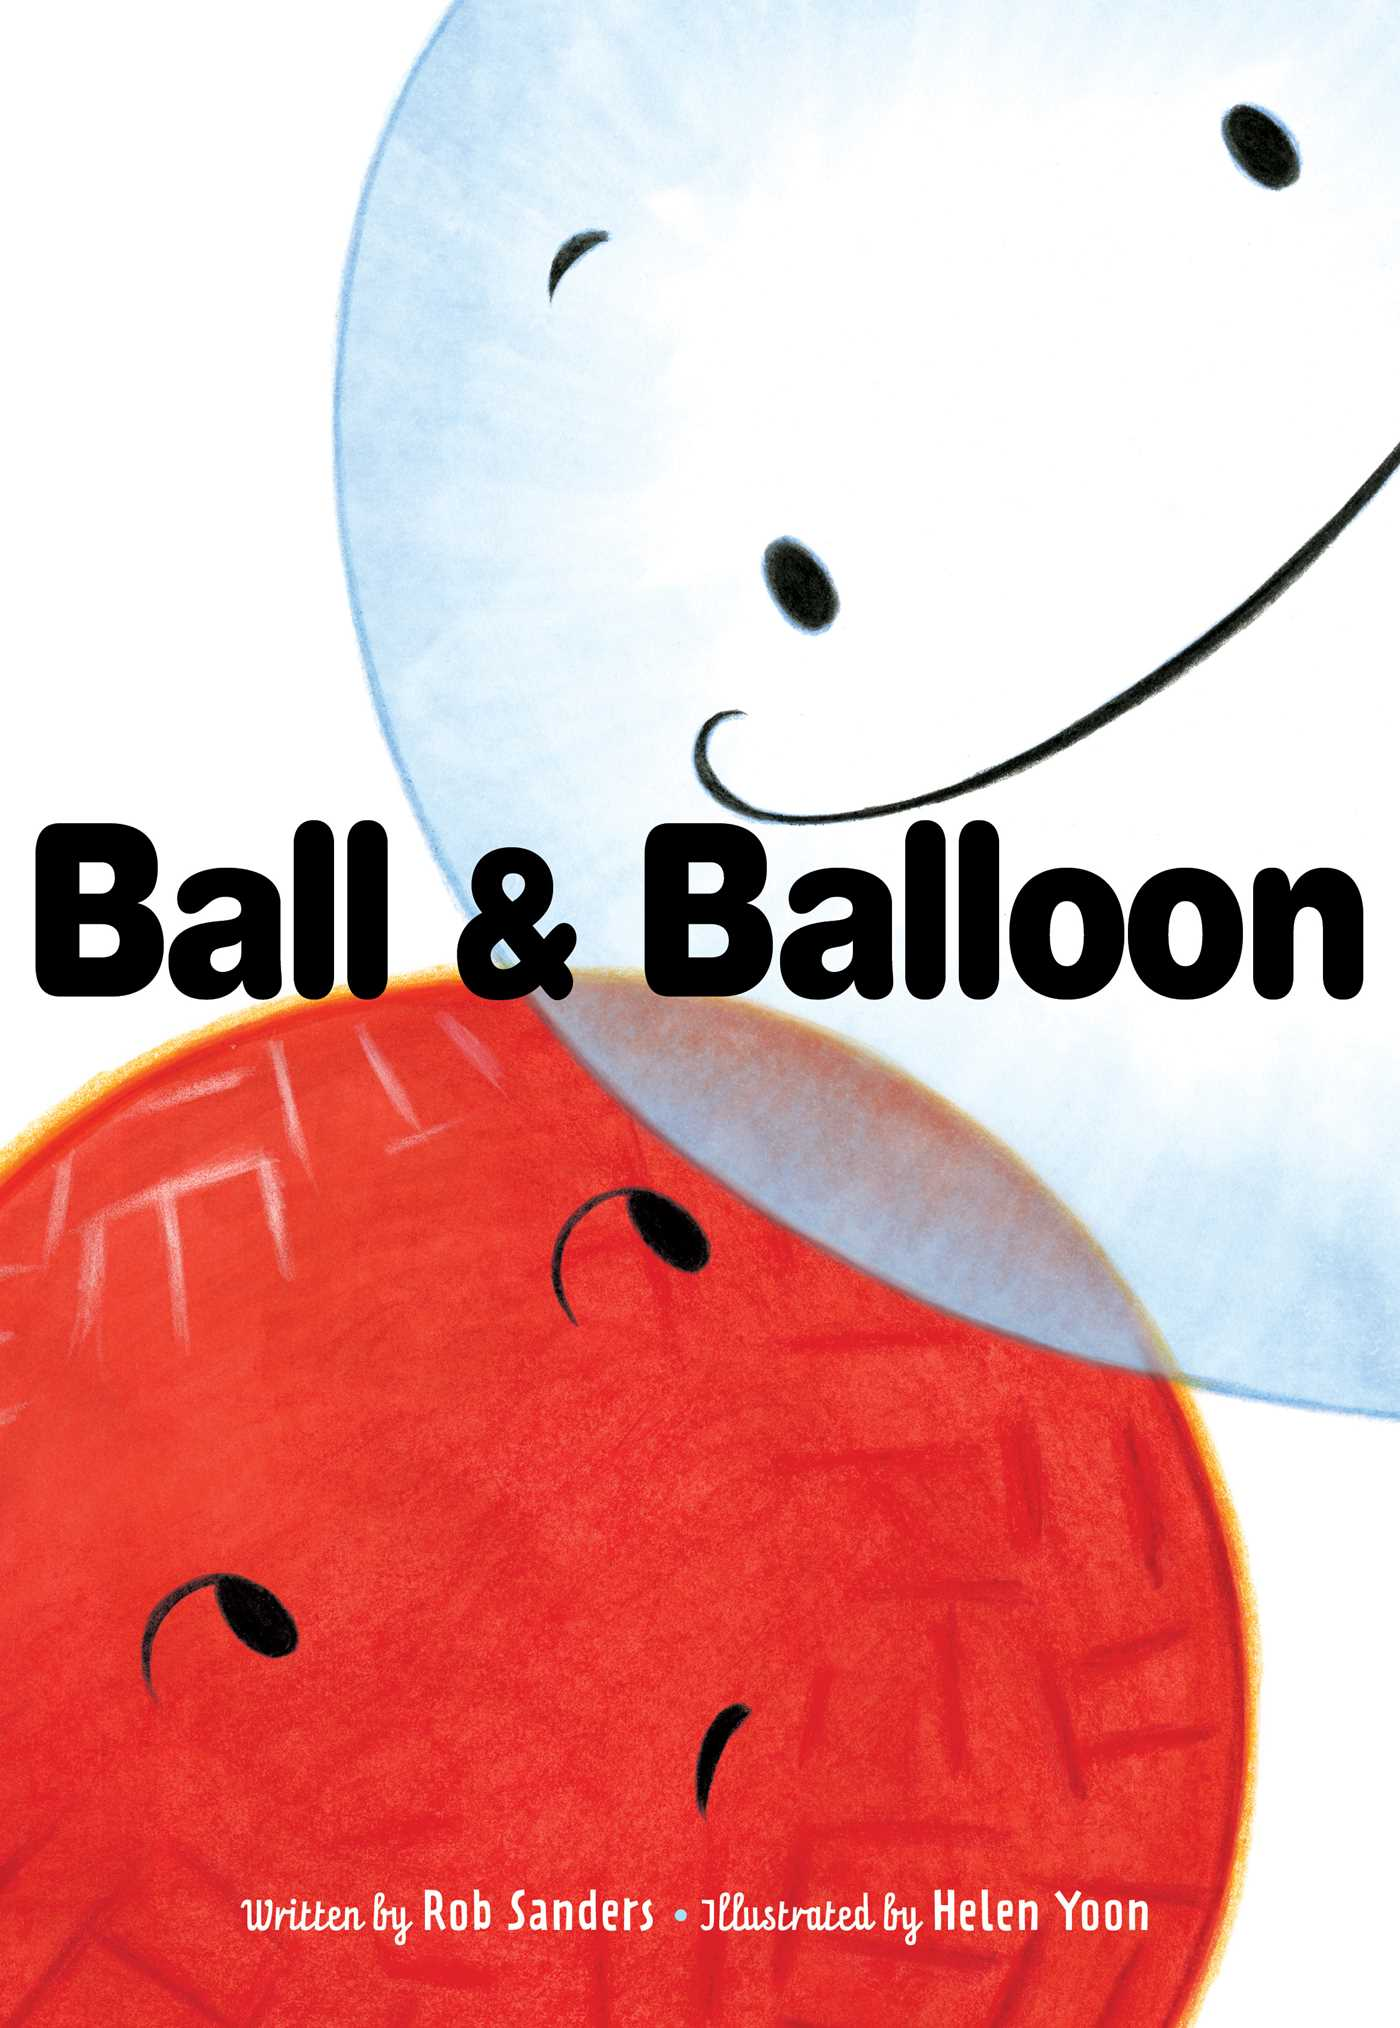 Ball & Balloon by Rob Sanders